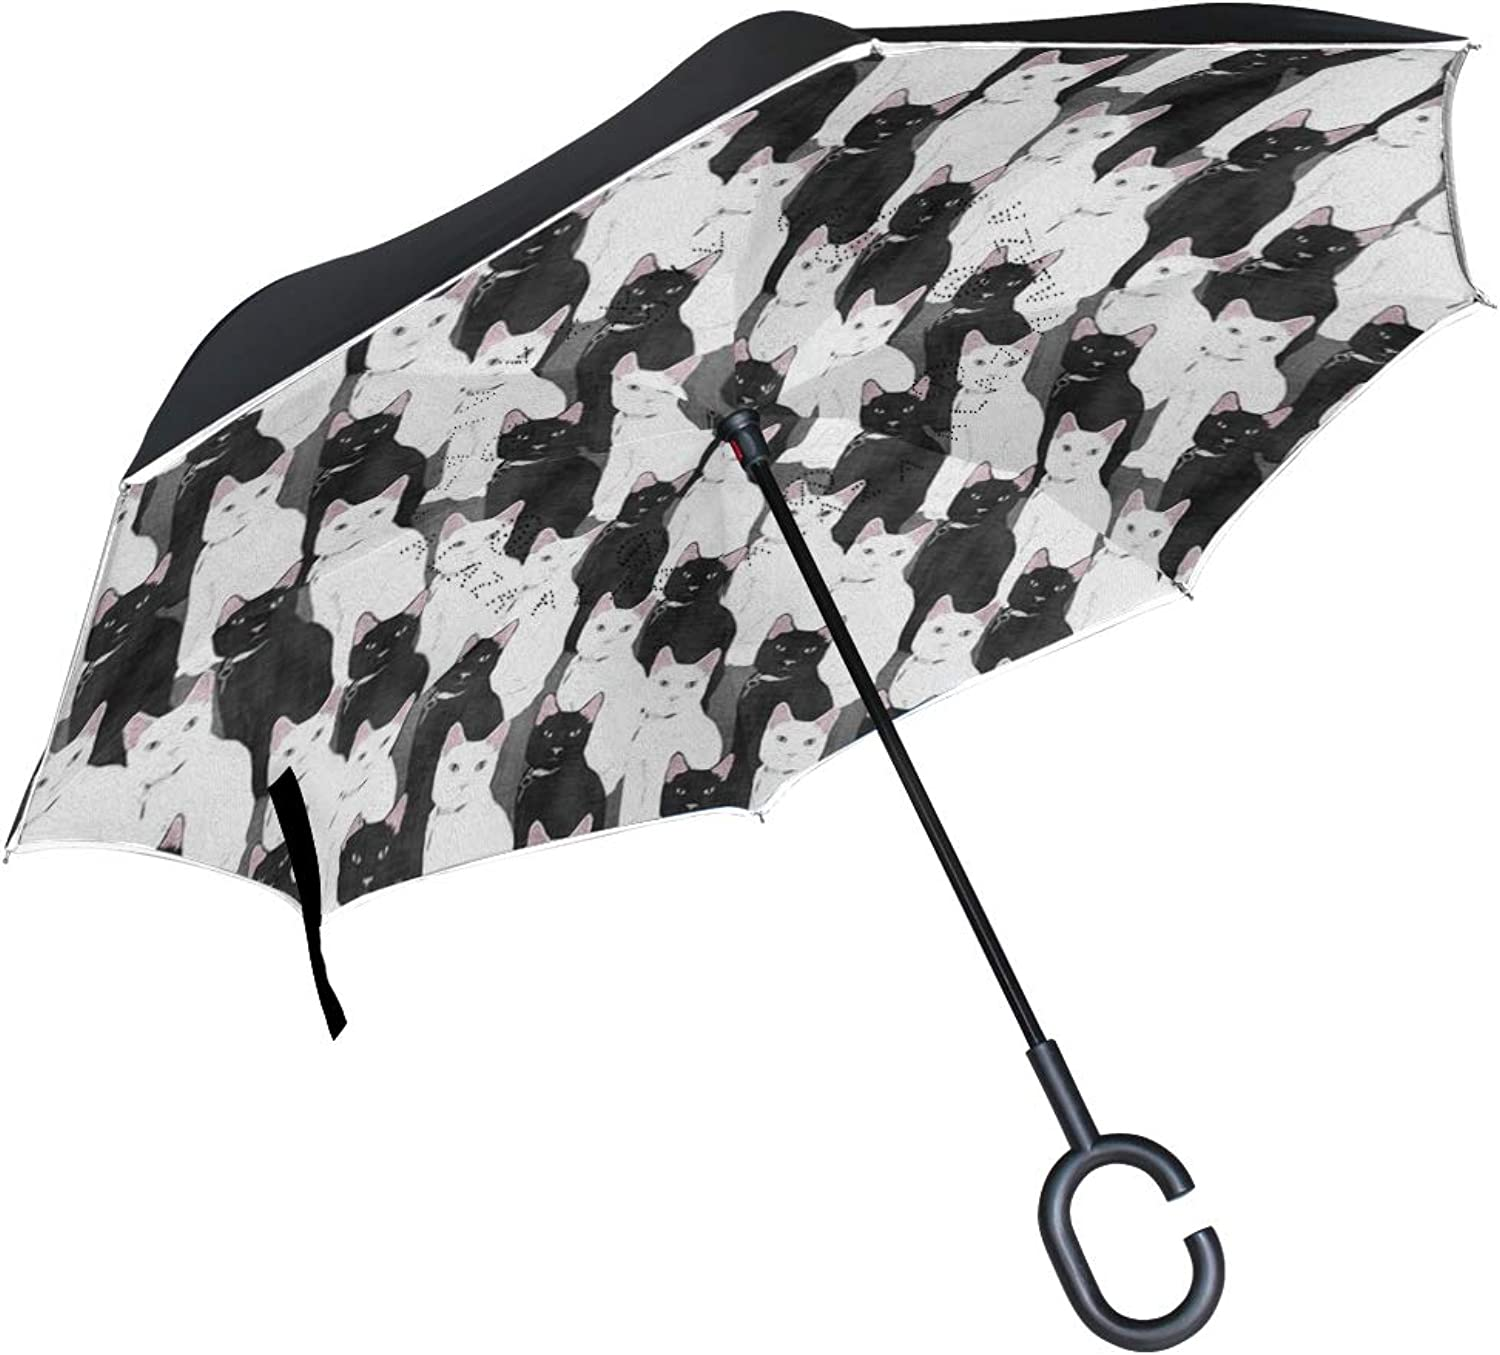 Gaz X Black and White Cats Ingreened Umbrella Double Layer Windproof UV Predection Large Upside Down Straight Umbrella for Car Rain with CShaped Handle